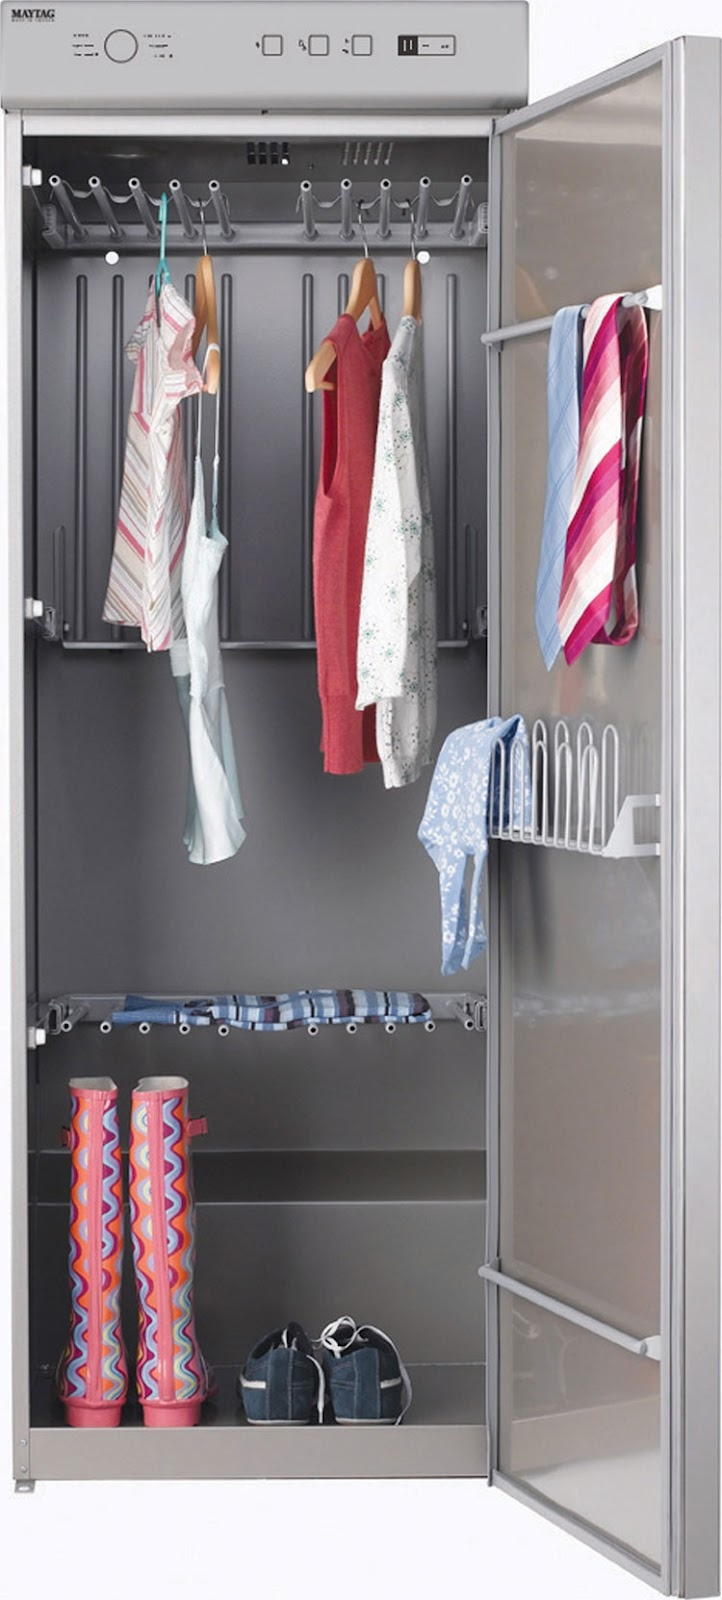 Clothes Drying Cabinet ~ Best images about laundry room on pinterest dog